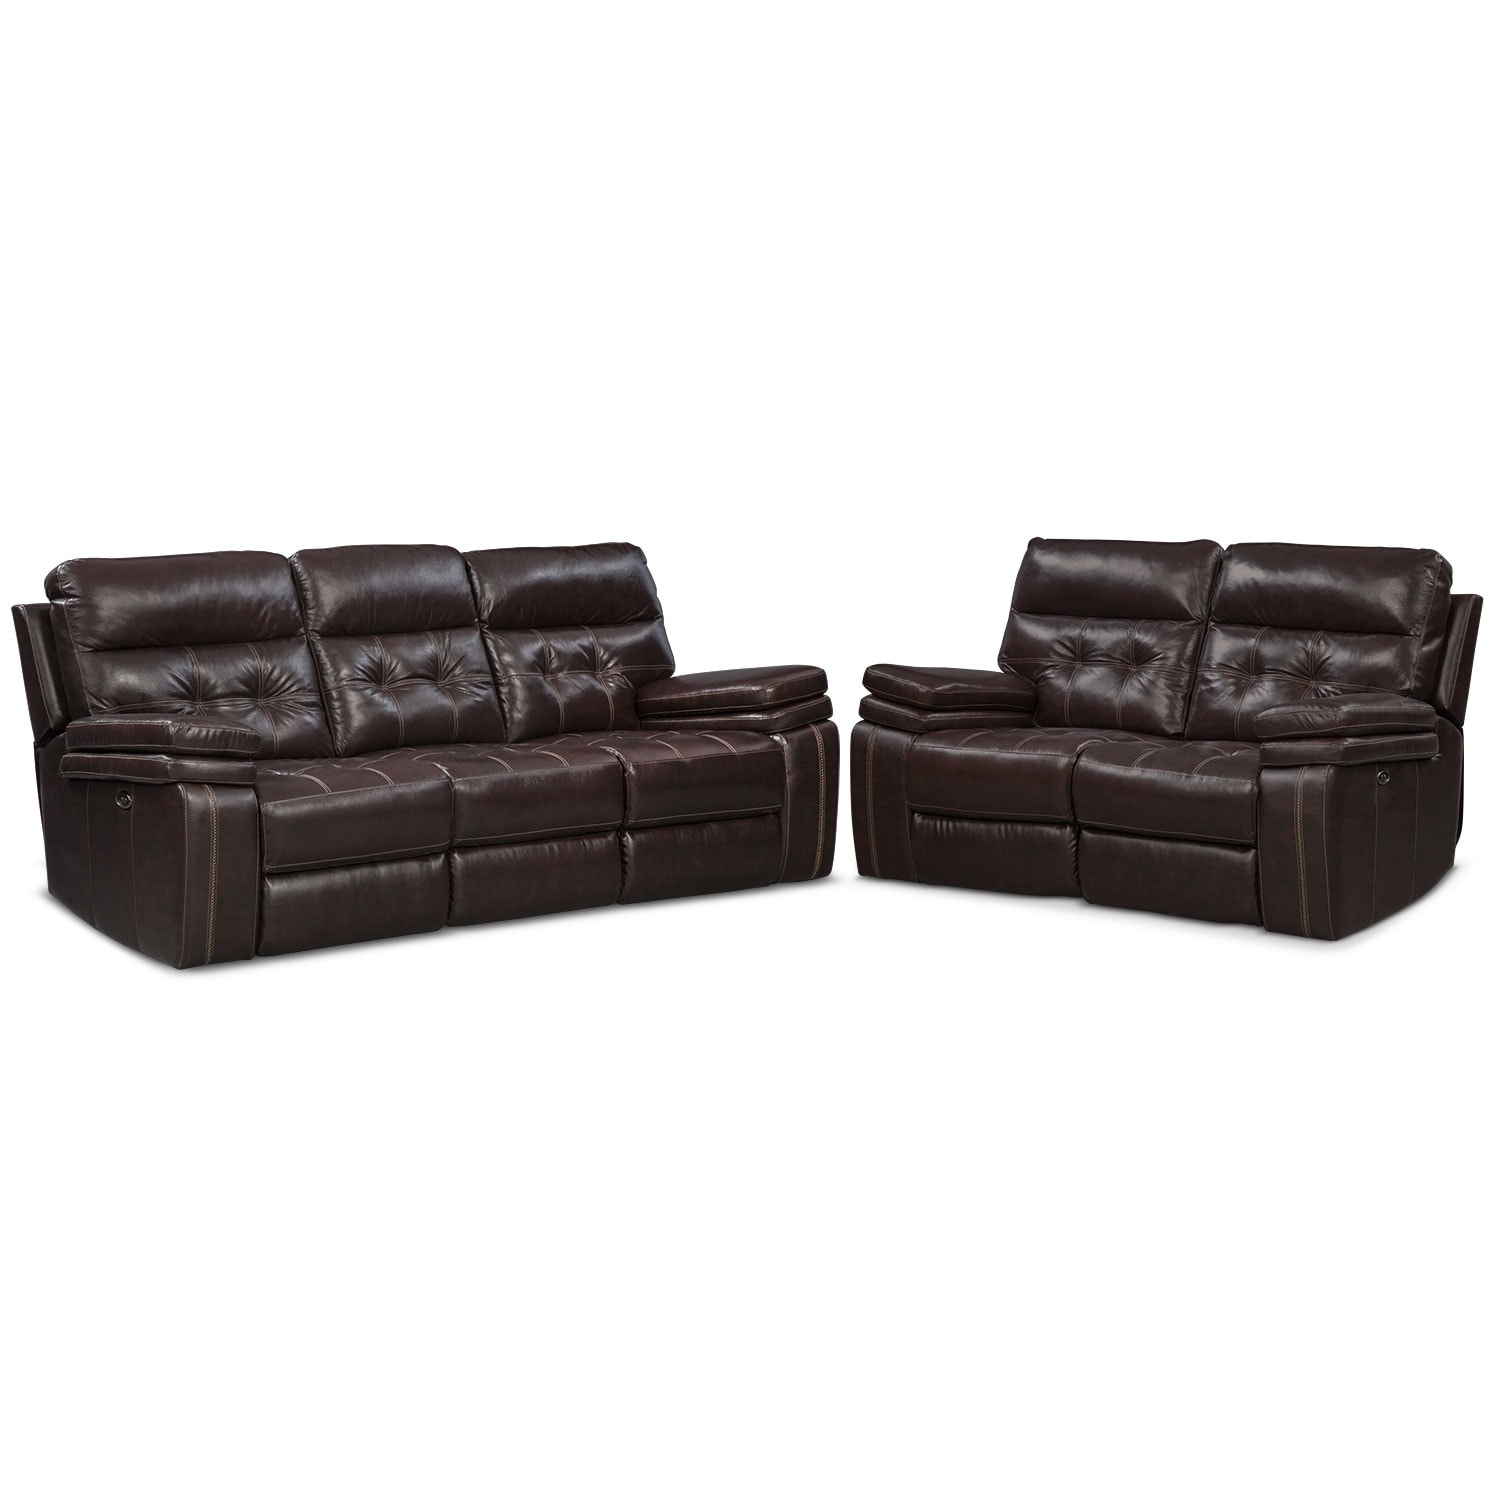 Brisco Power Reclining Sofa And Reclining Loveseat Set